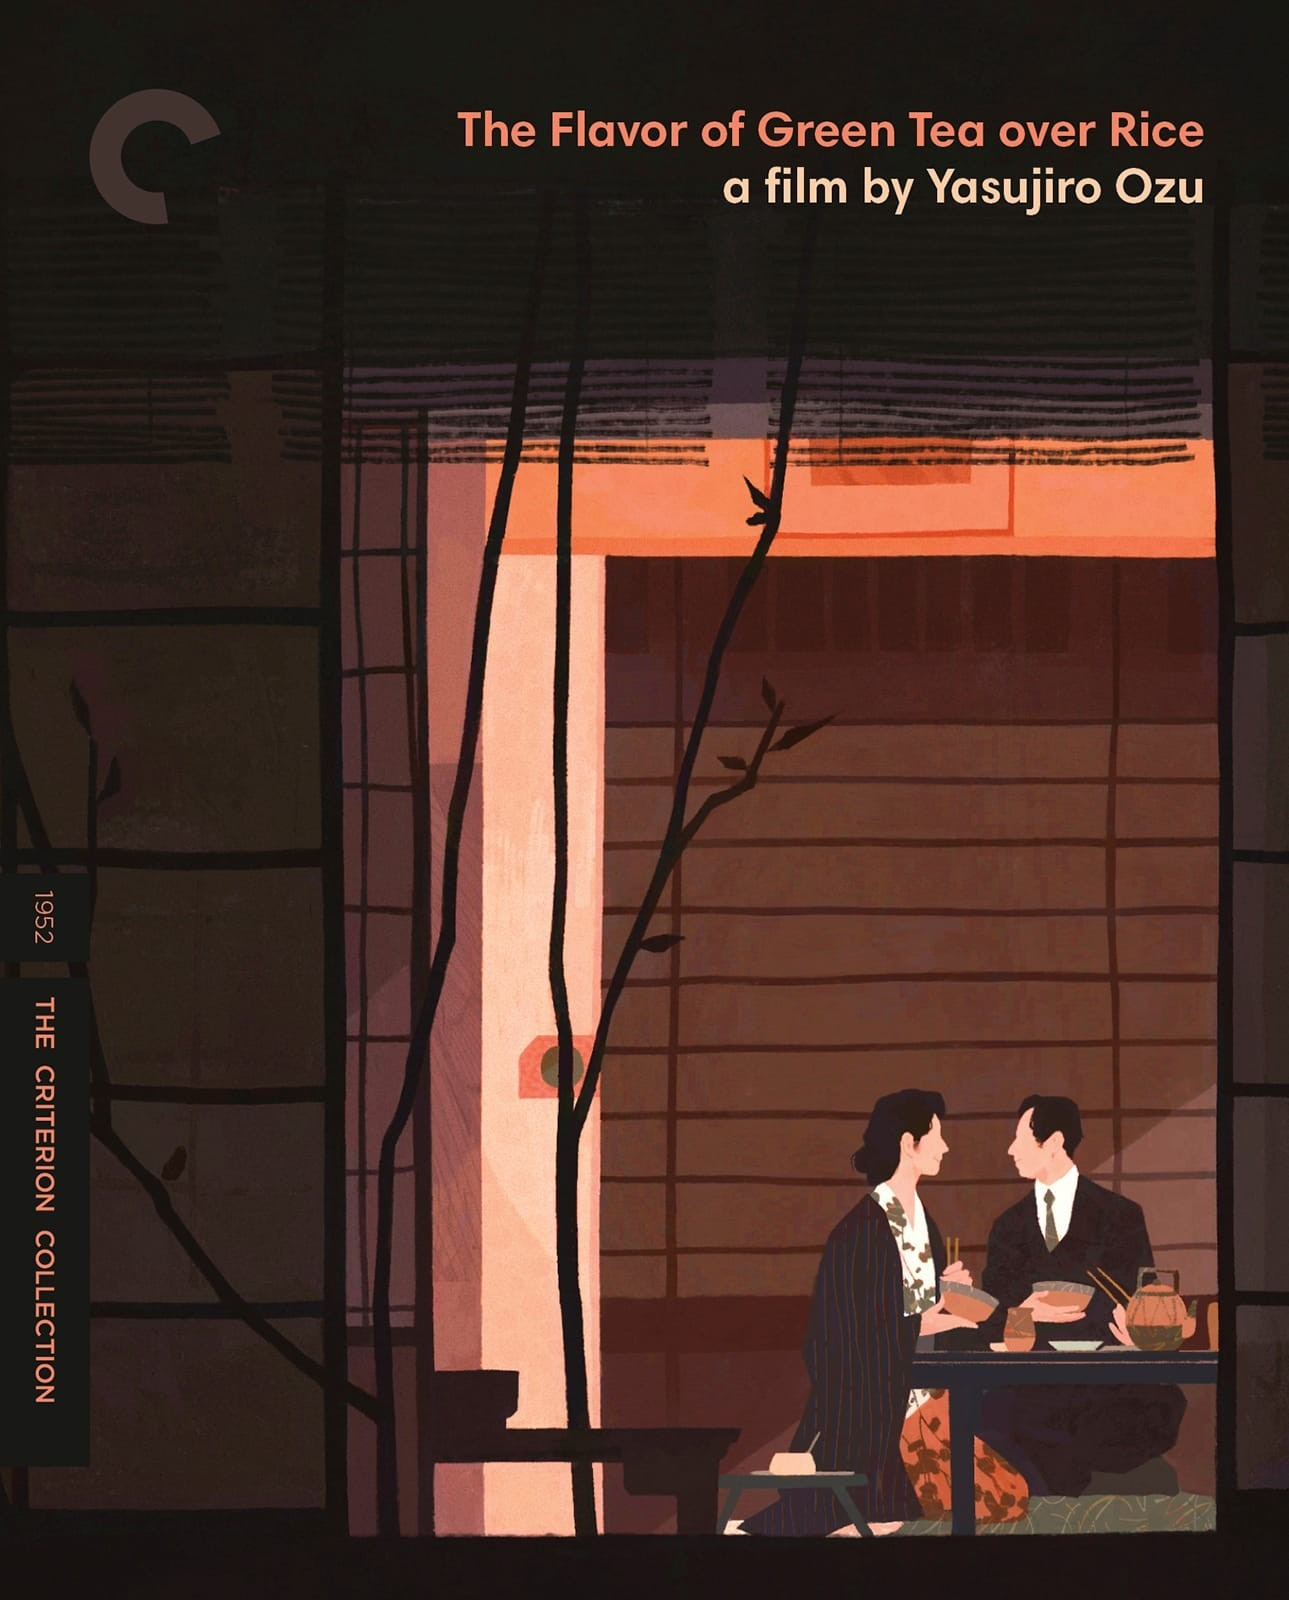 The Flavor of Green Tea over Rice (The Criterion Collection)(Blu-ray)(Region A)(Pre-order / Aug 27)